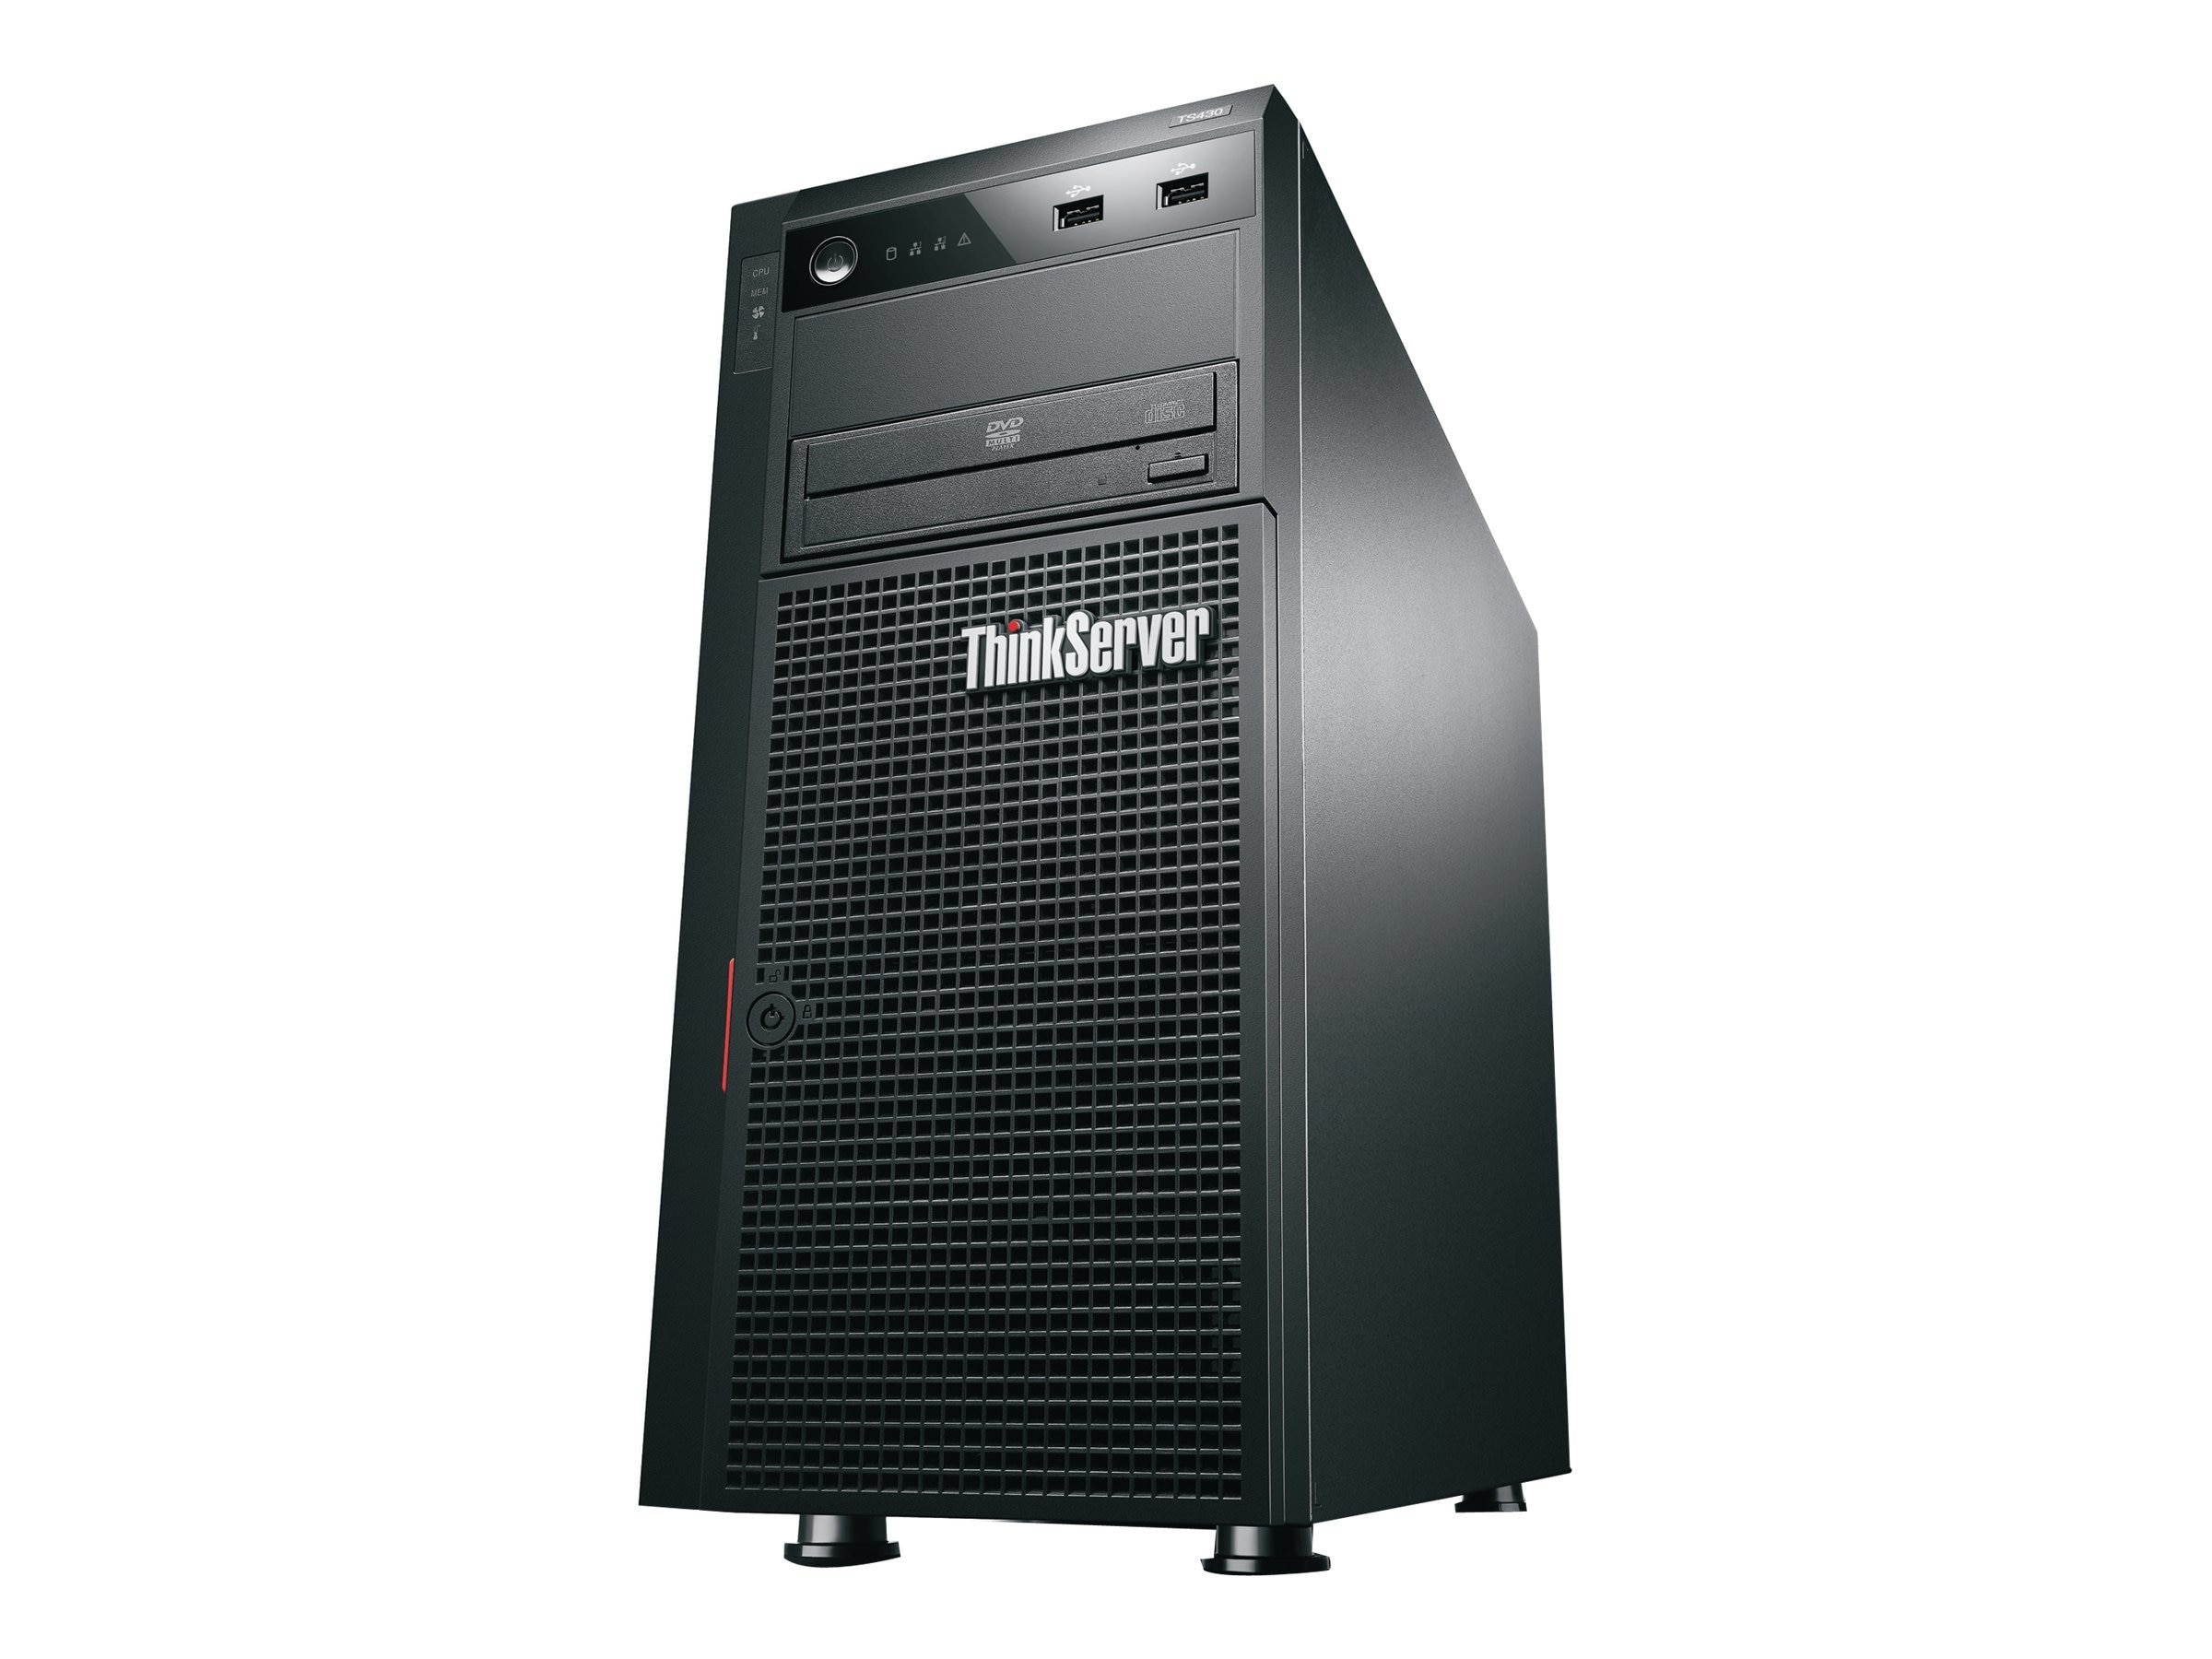 Lenovo TS ThinkServer 430 Tower Core i3 3.3GHz 4GB 4x3.5 HS SATA Bays